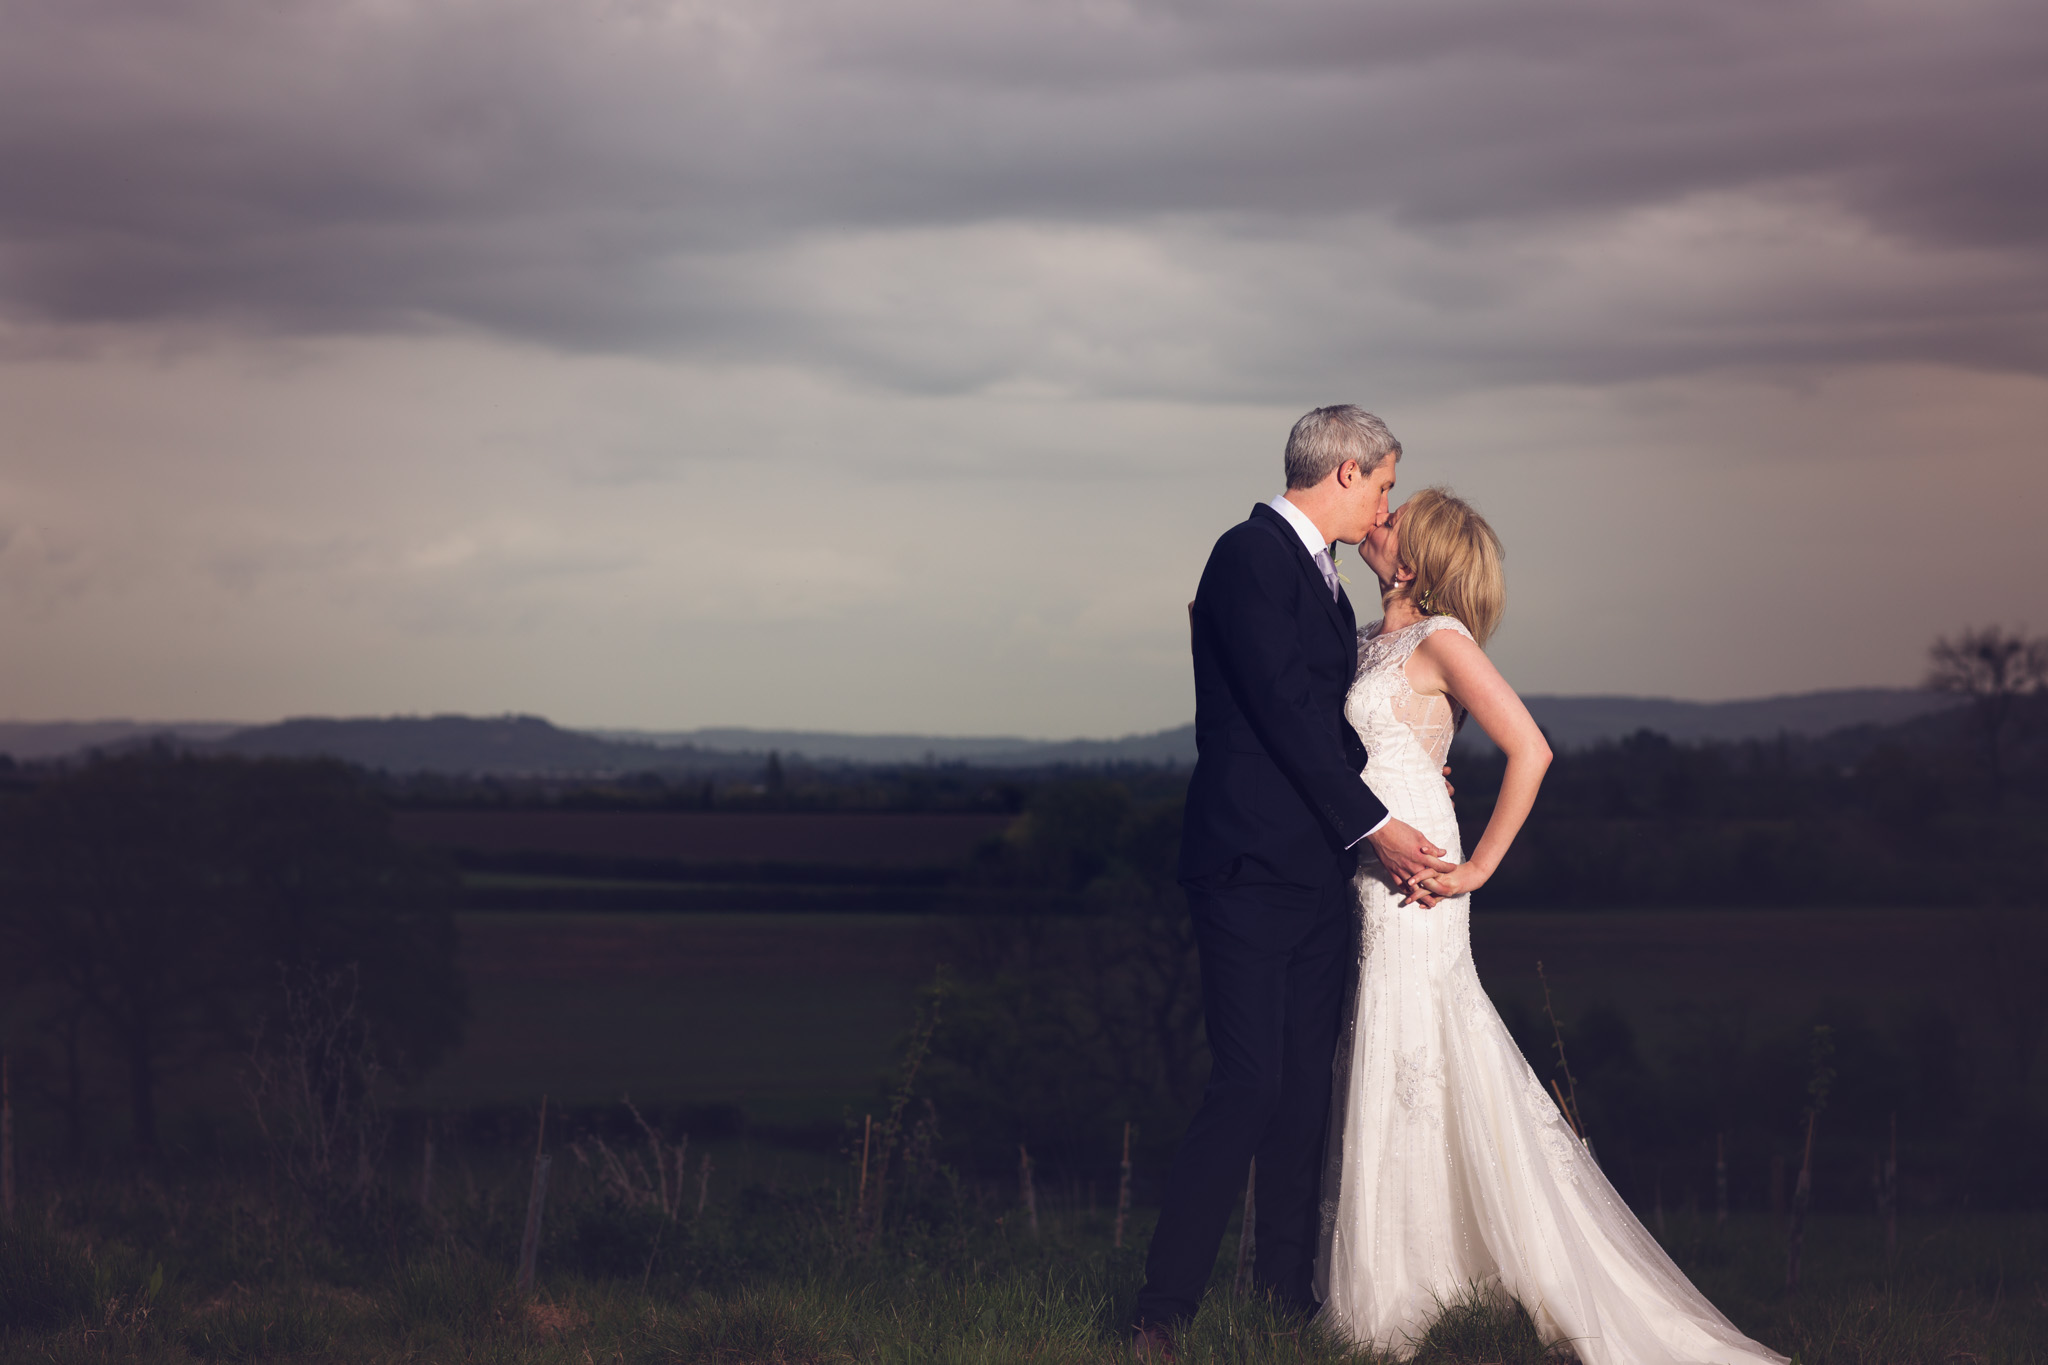 Mark_Barnes_Gloucester_Wedding_Photographer_Elmore_Court_Wedding_Photography_Mike+Kelly-92.jpg